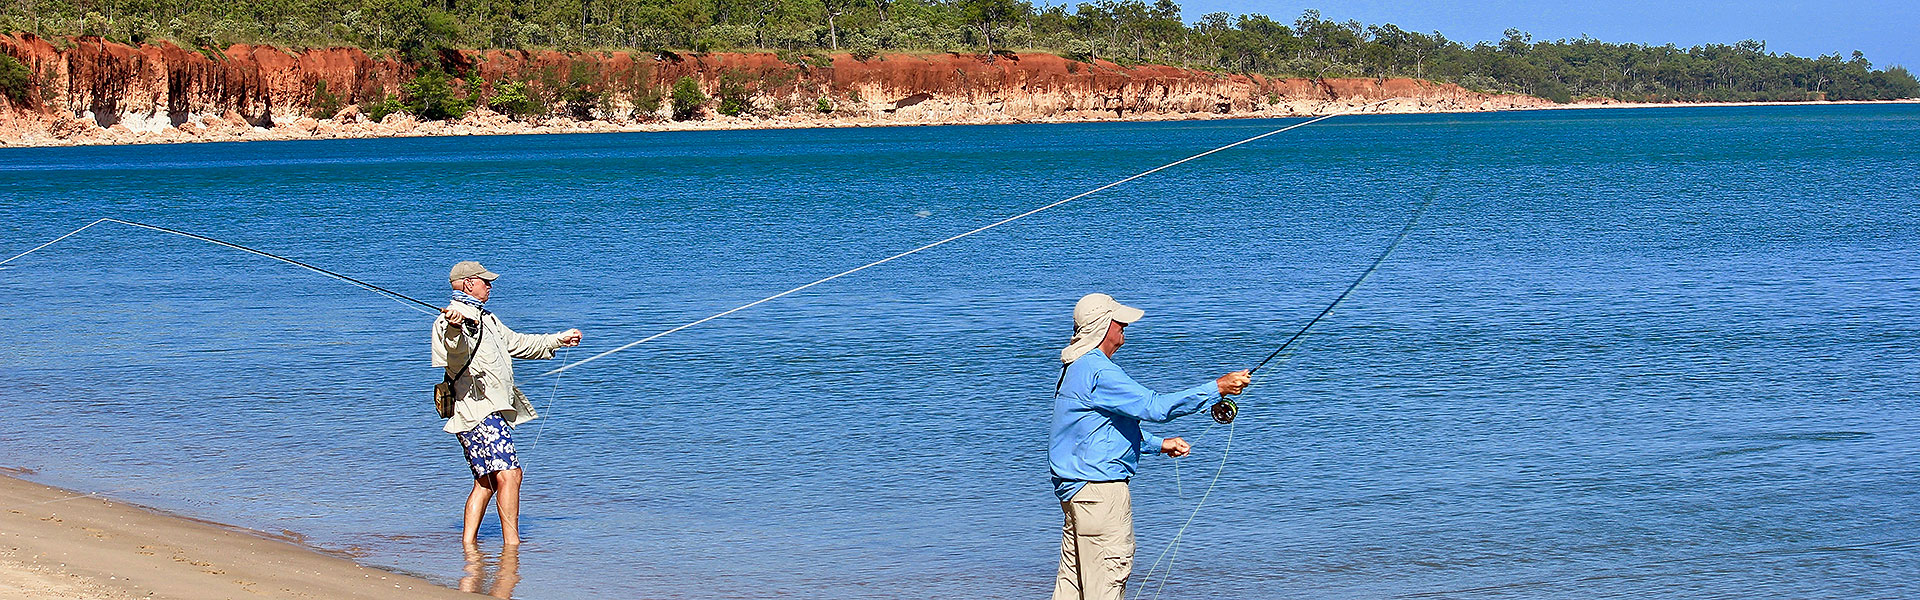 WEIPA FLY FISHING  <span>LET'S GET WILD</span>